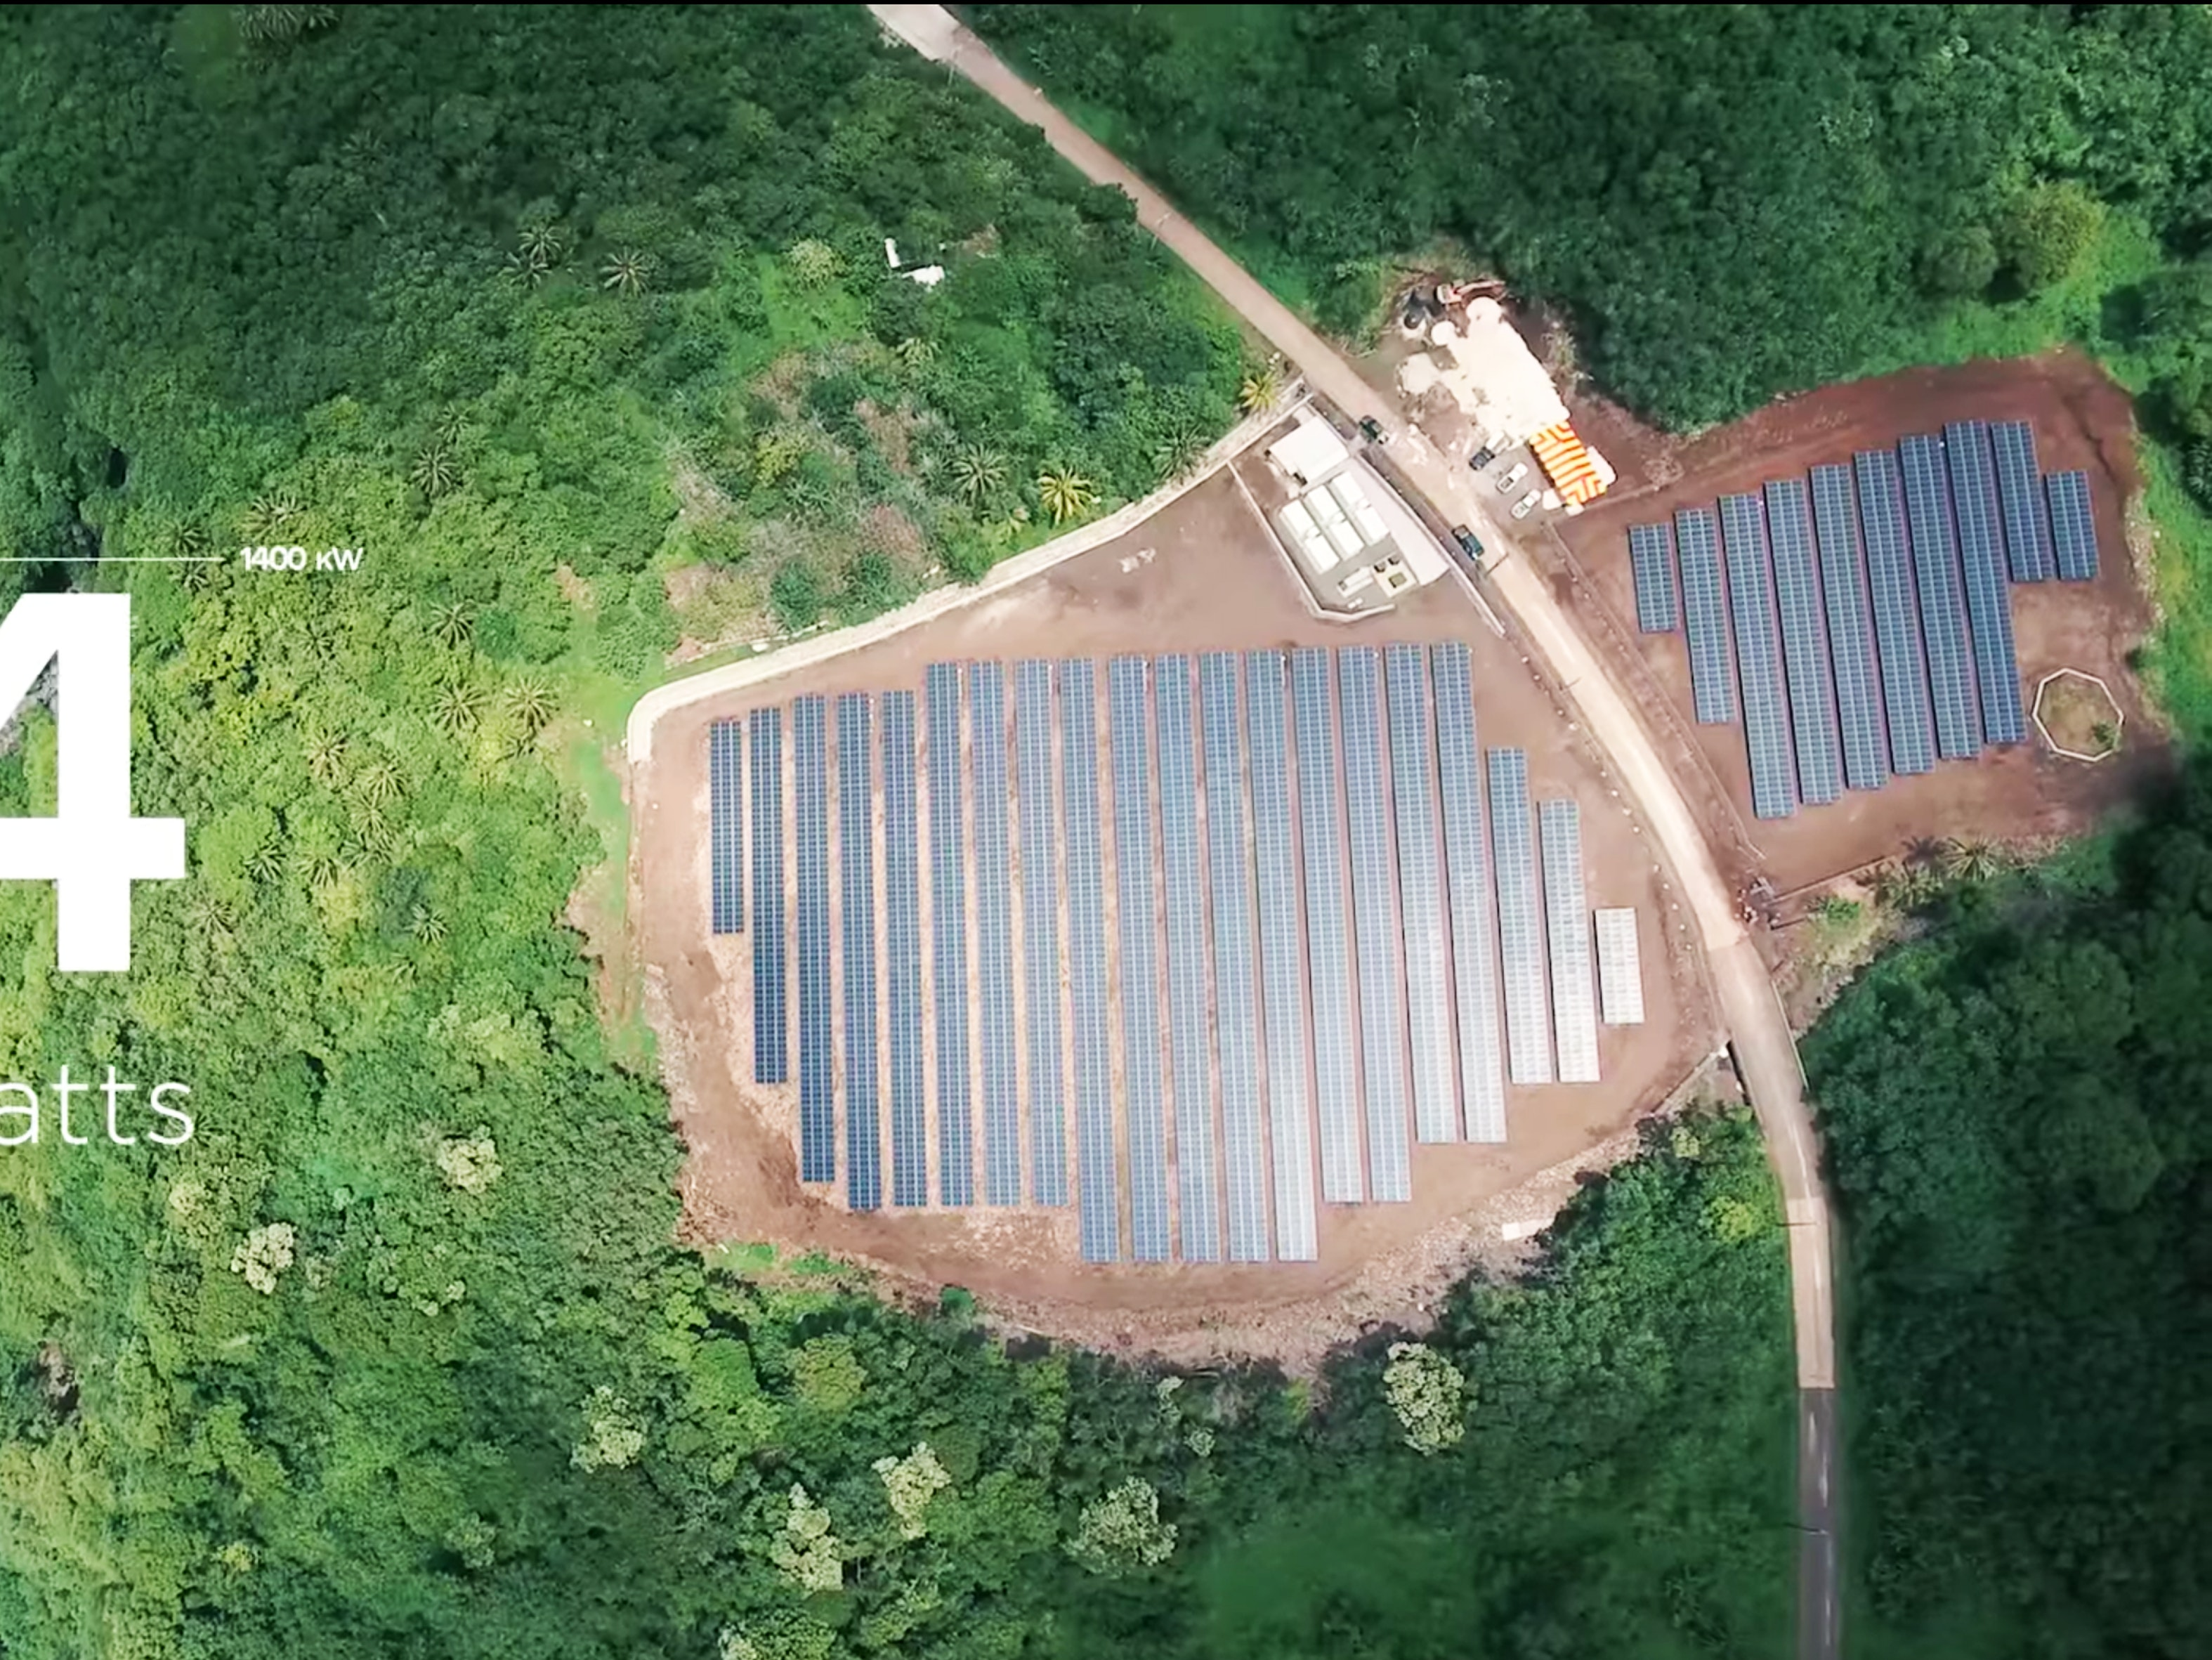 The microgrid: All 5,000-plus solar panels, along with the 60 Powerpacks.